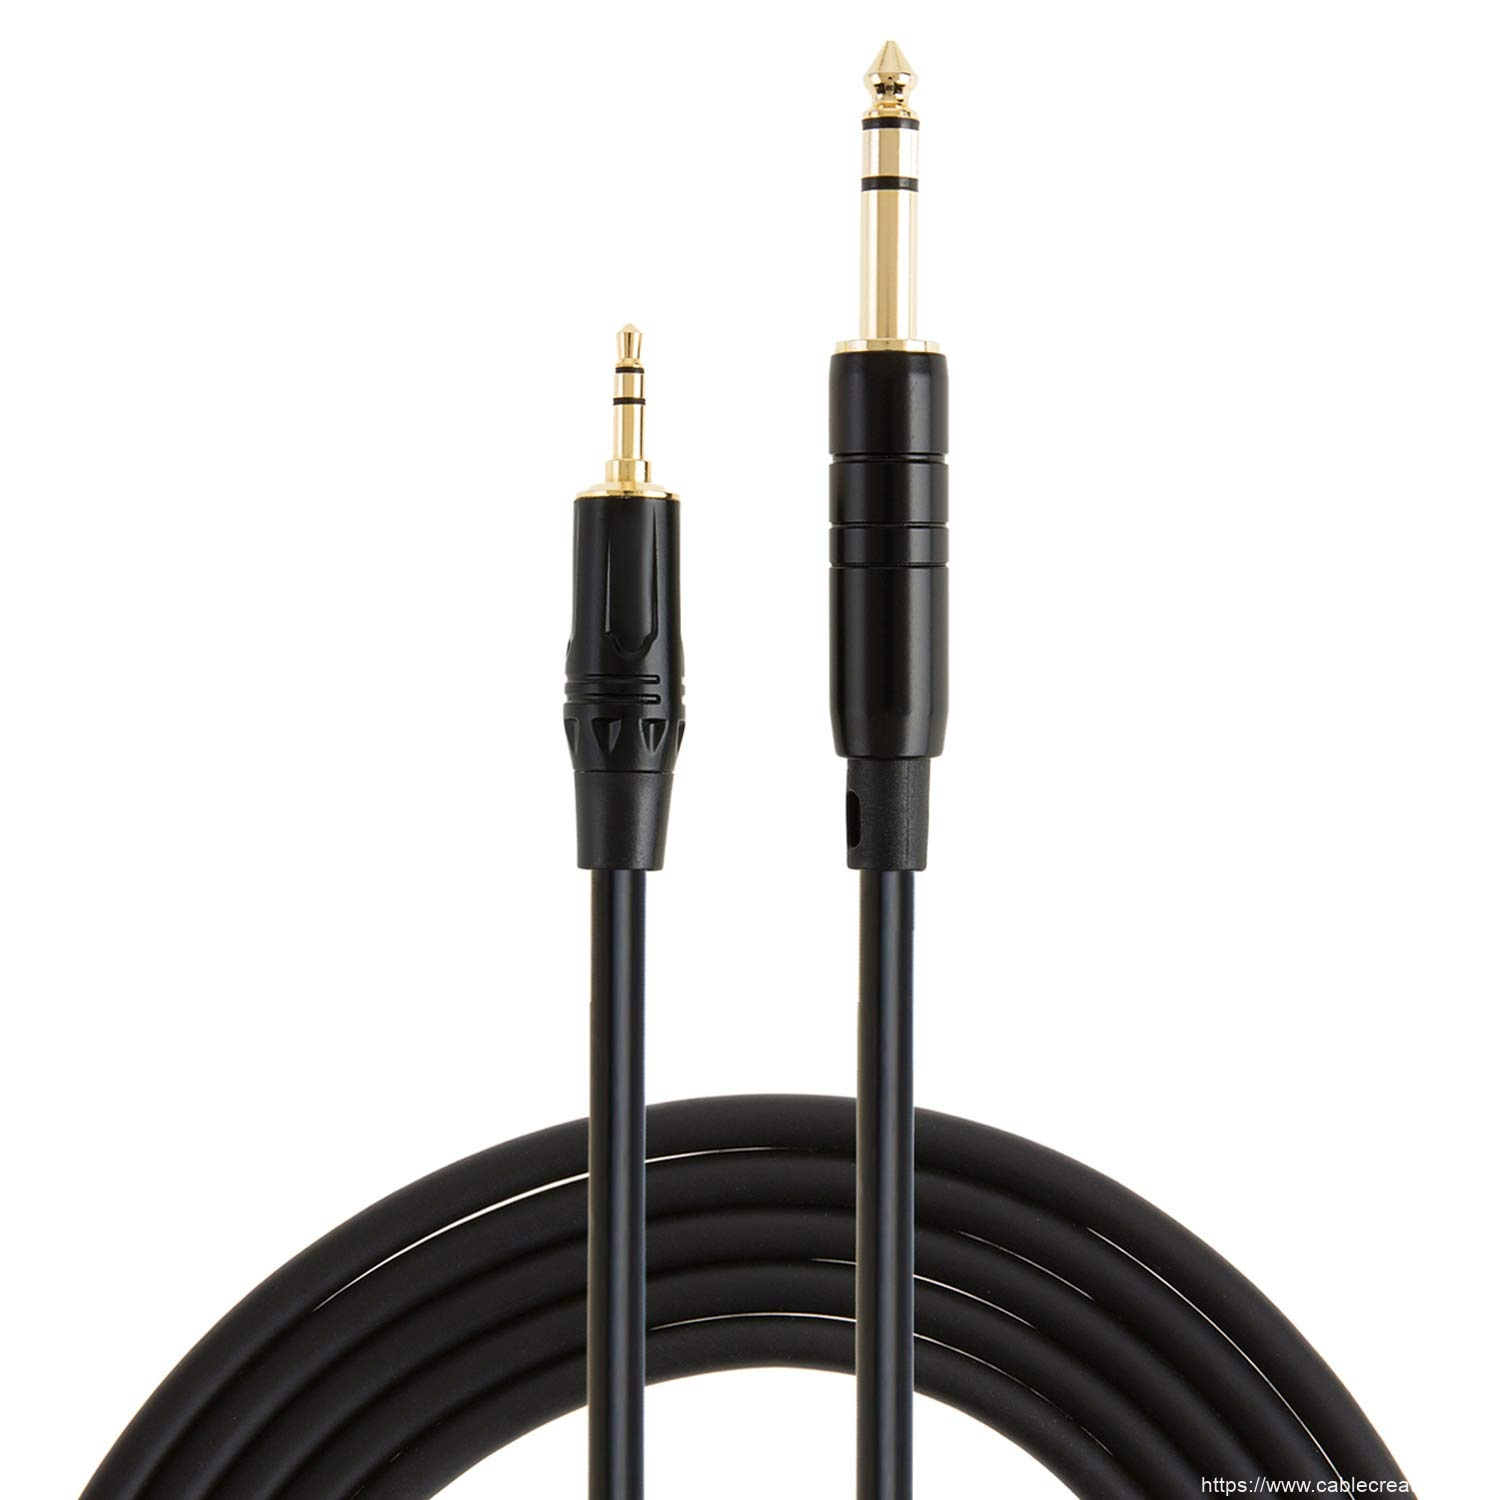 One of Hottest for Dvi To Dp Cable - 3.5mm to 6.35mm Audio Cable 16 Feet/5 Meters, #CX0087 – CableCreation